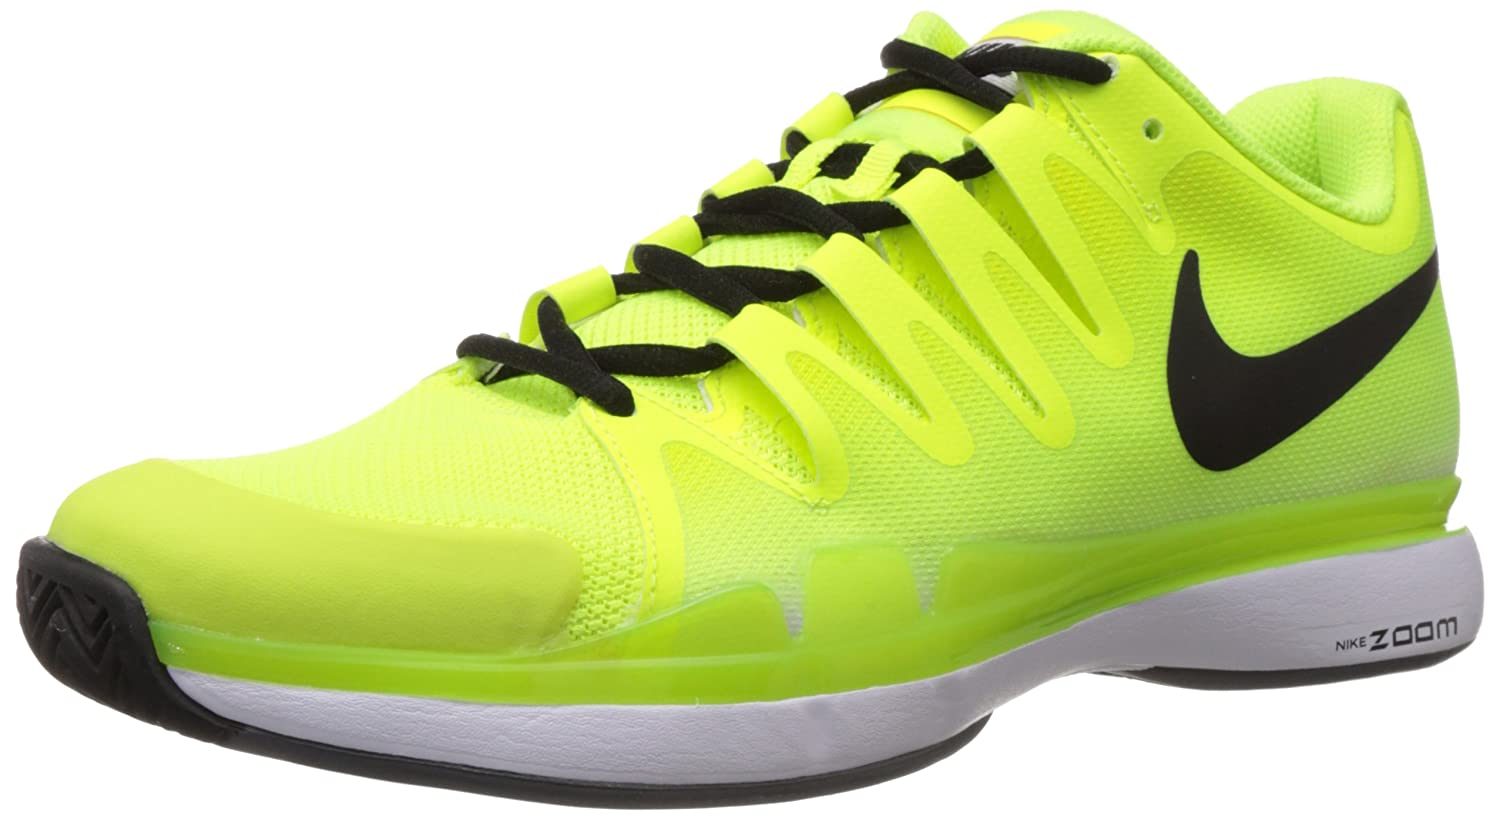 reputable site 9bff6 92100 Amazon.com  Nike Zoom Vapor 9.5 Tour Mens Tennis Shoes Yellow New In Box,  10  Sports   Outdoors